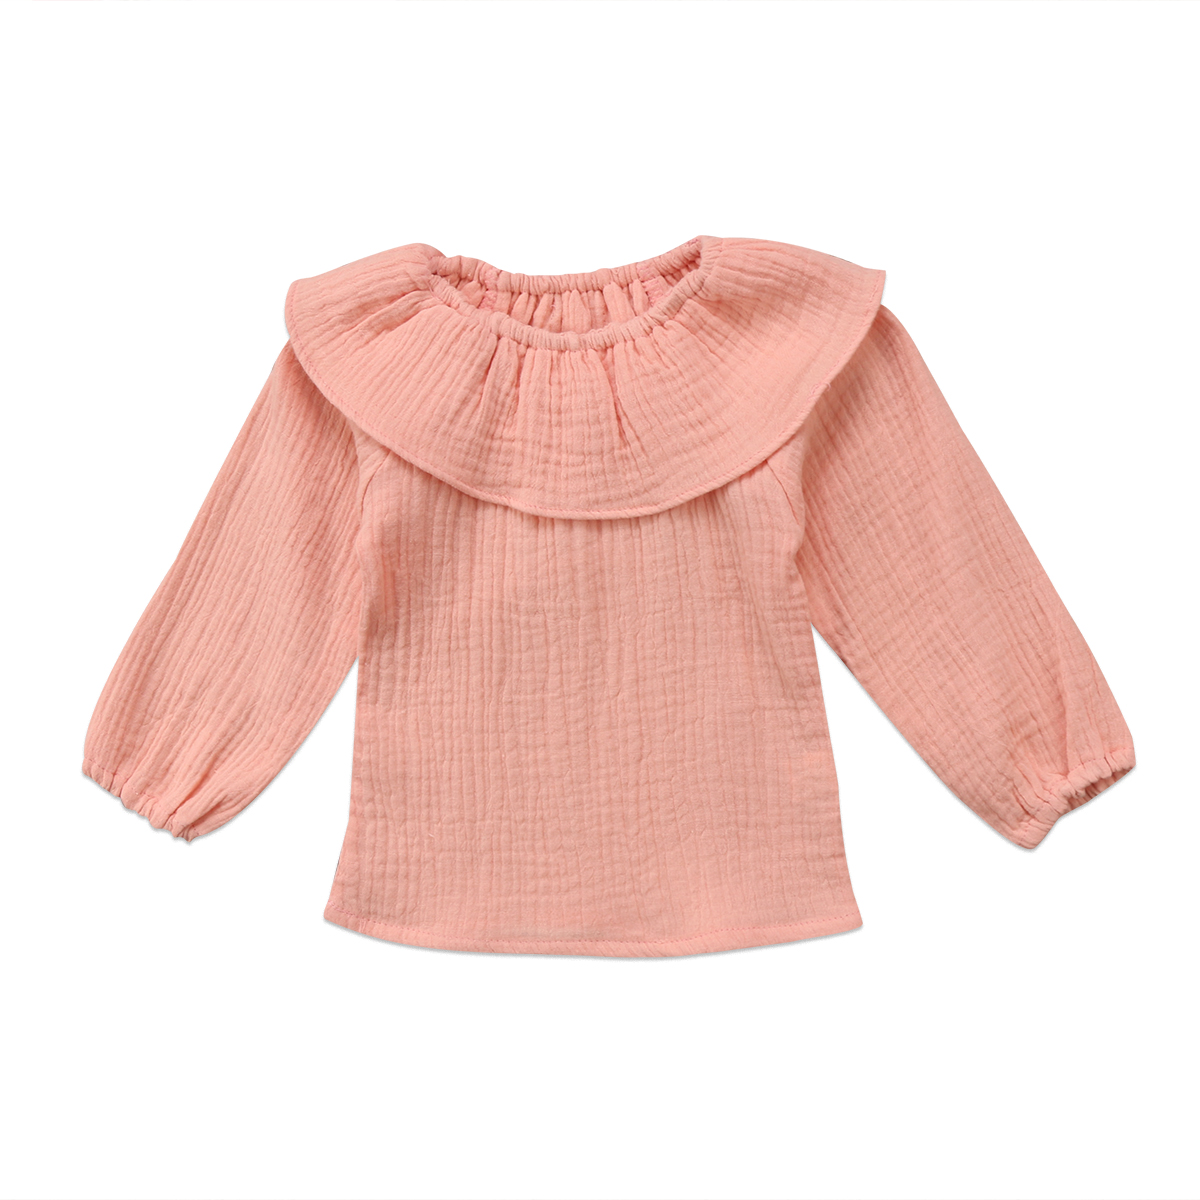 Fashion New Kids Baby Girl Ruffle Collar Long Sleeve Top Solid T-shirt Clothes